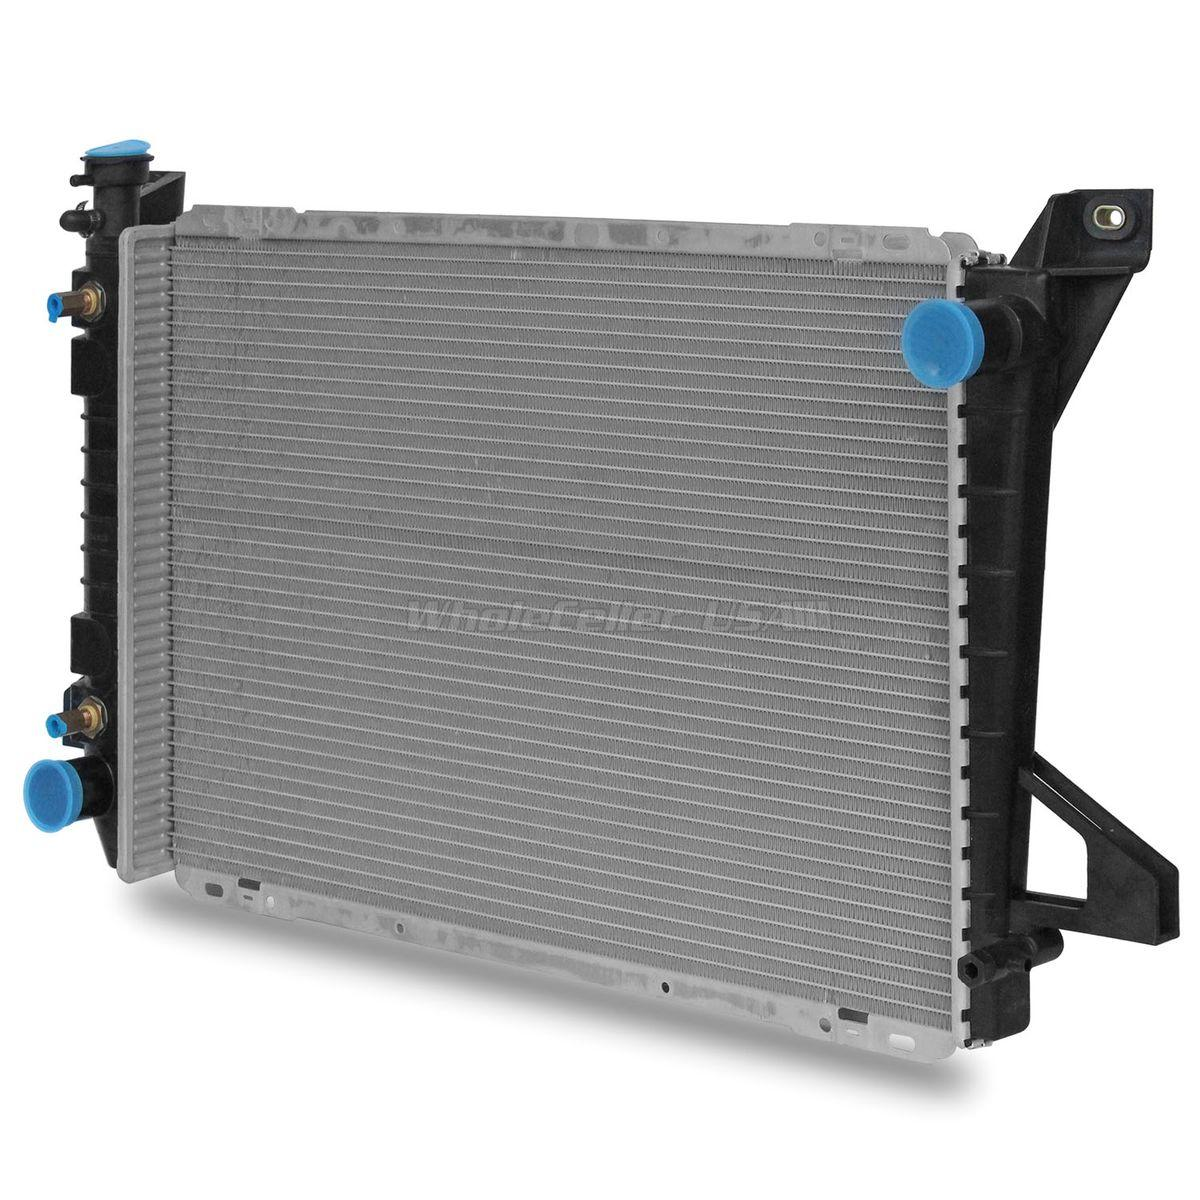 STAYCO Aluminum Radiator 1453 For 1985-1997 Ford F150 F250